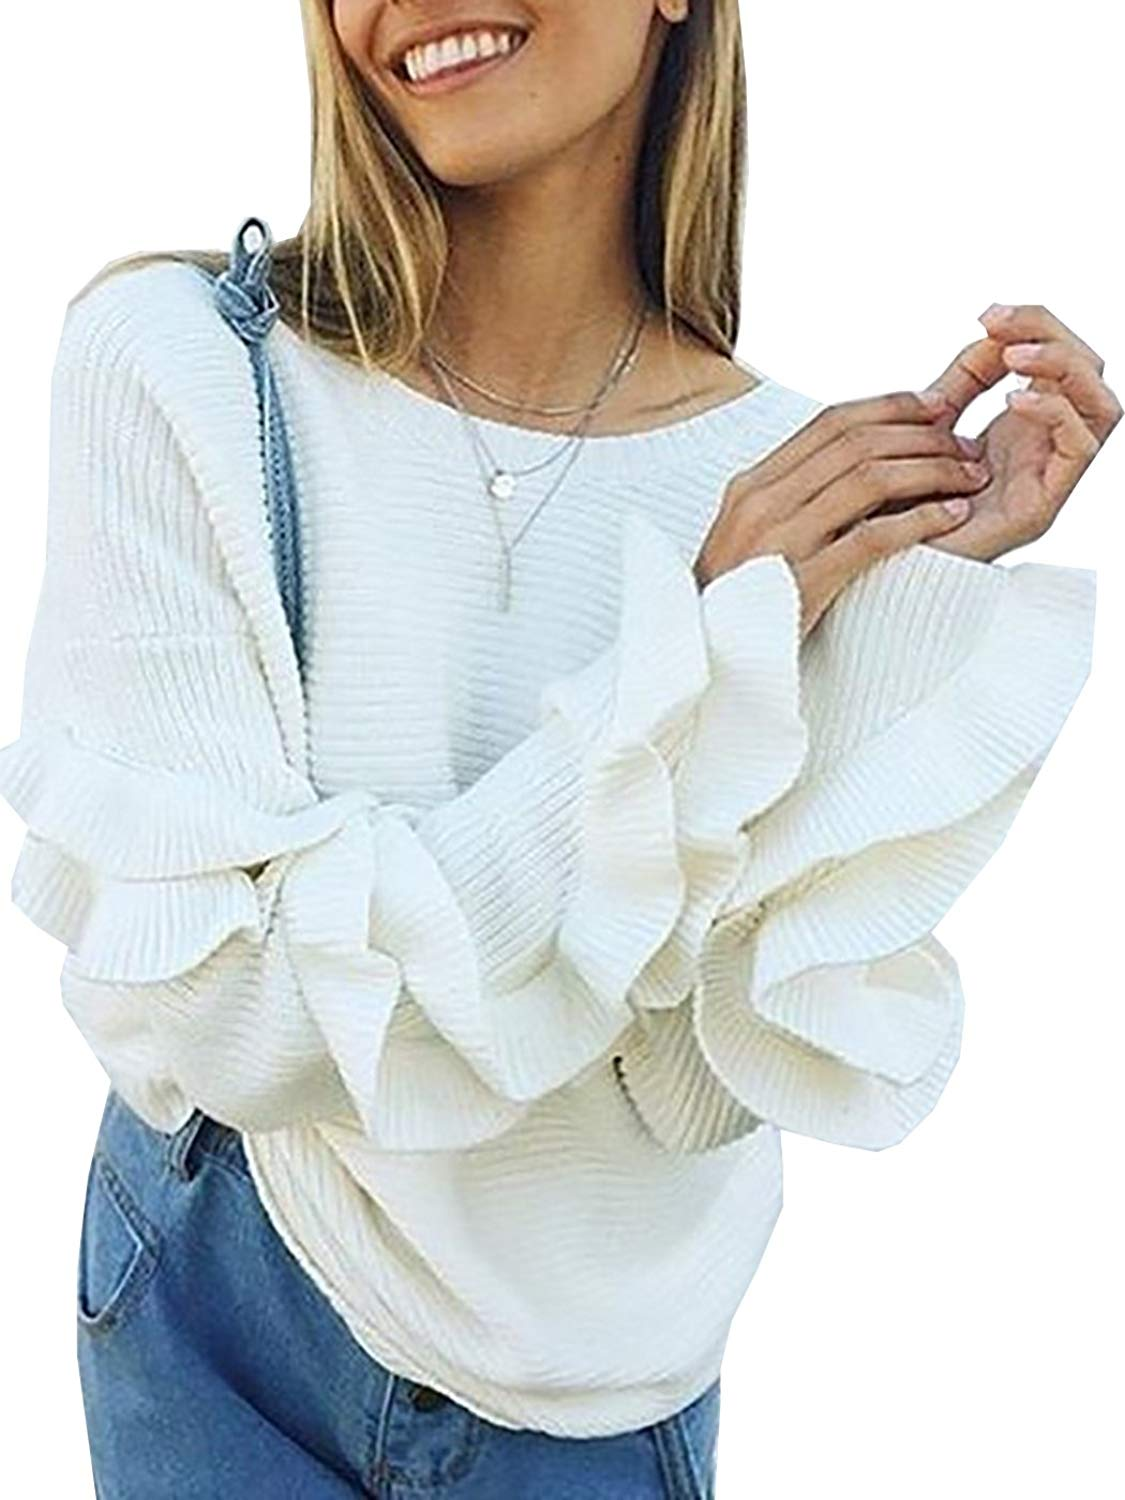 d3807d91a91 Get Quotations · FEIYOUNG Women Long Sleeve Blouse Sweater Knitted Dressy  Pullovers Sweaters